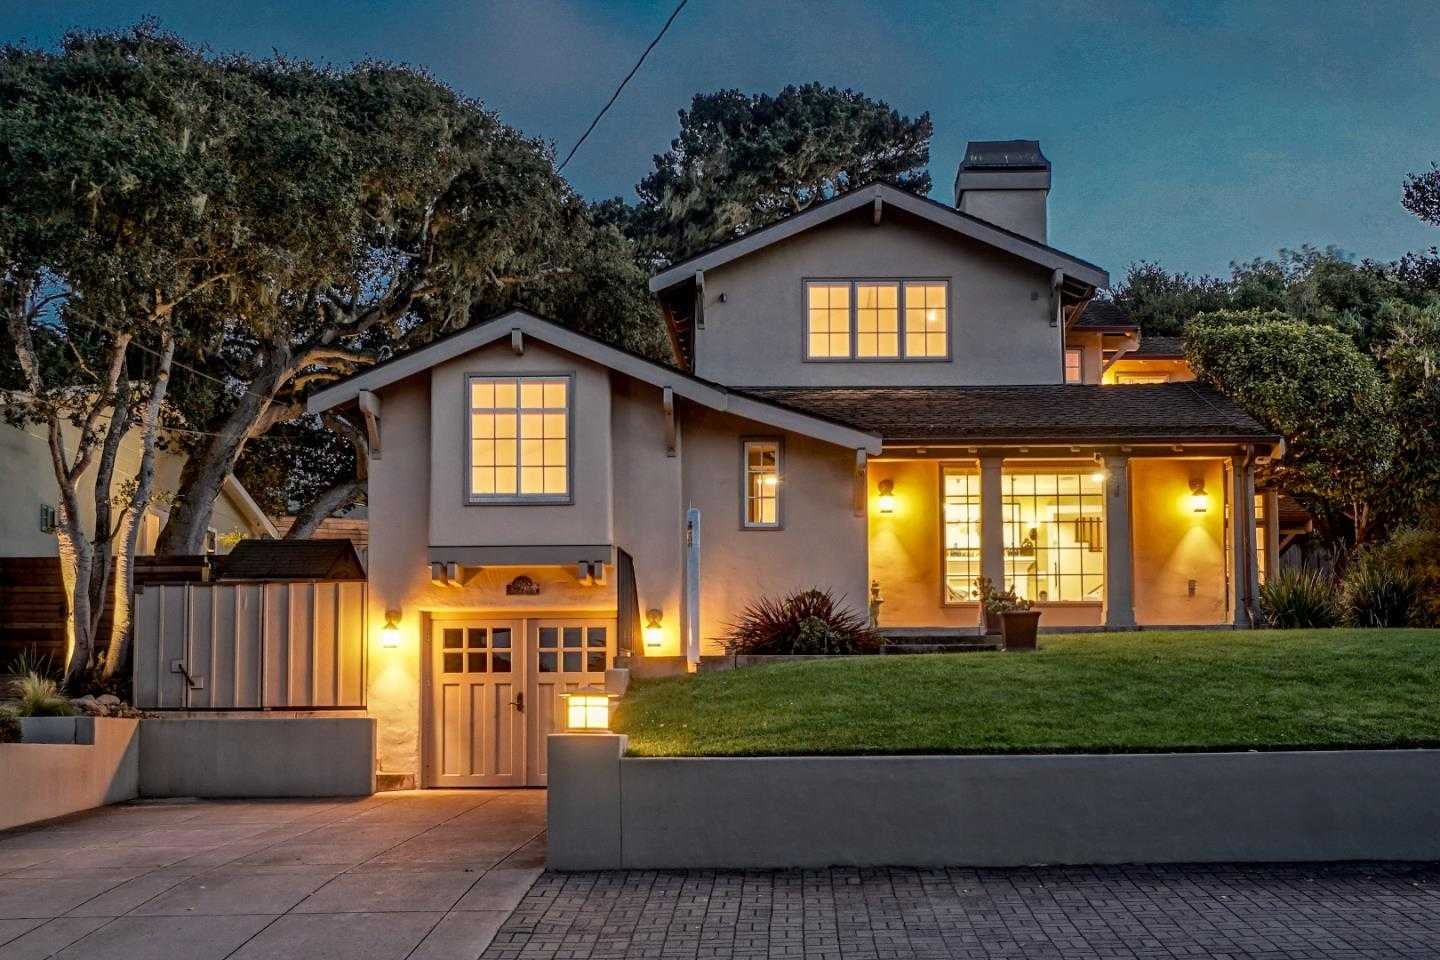 $2,495,000 - 4Br/3Ba -  for Sale in Pacific Grove